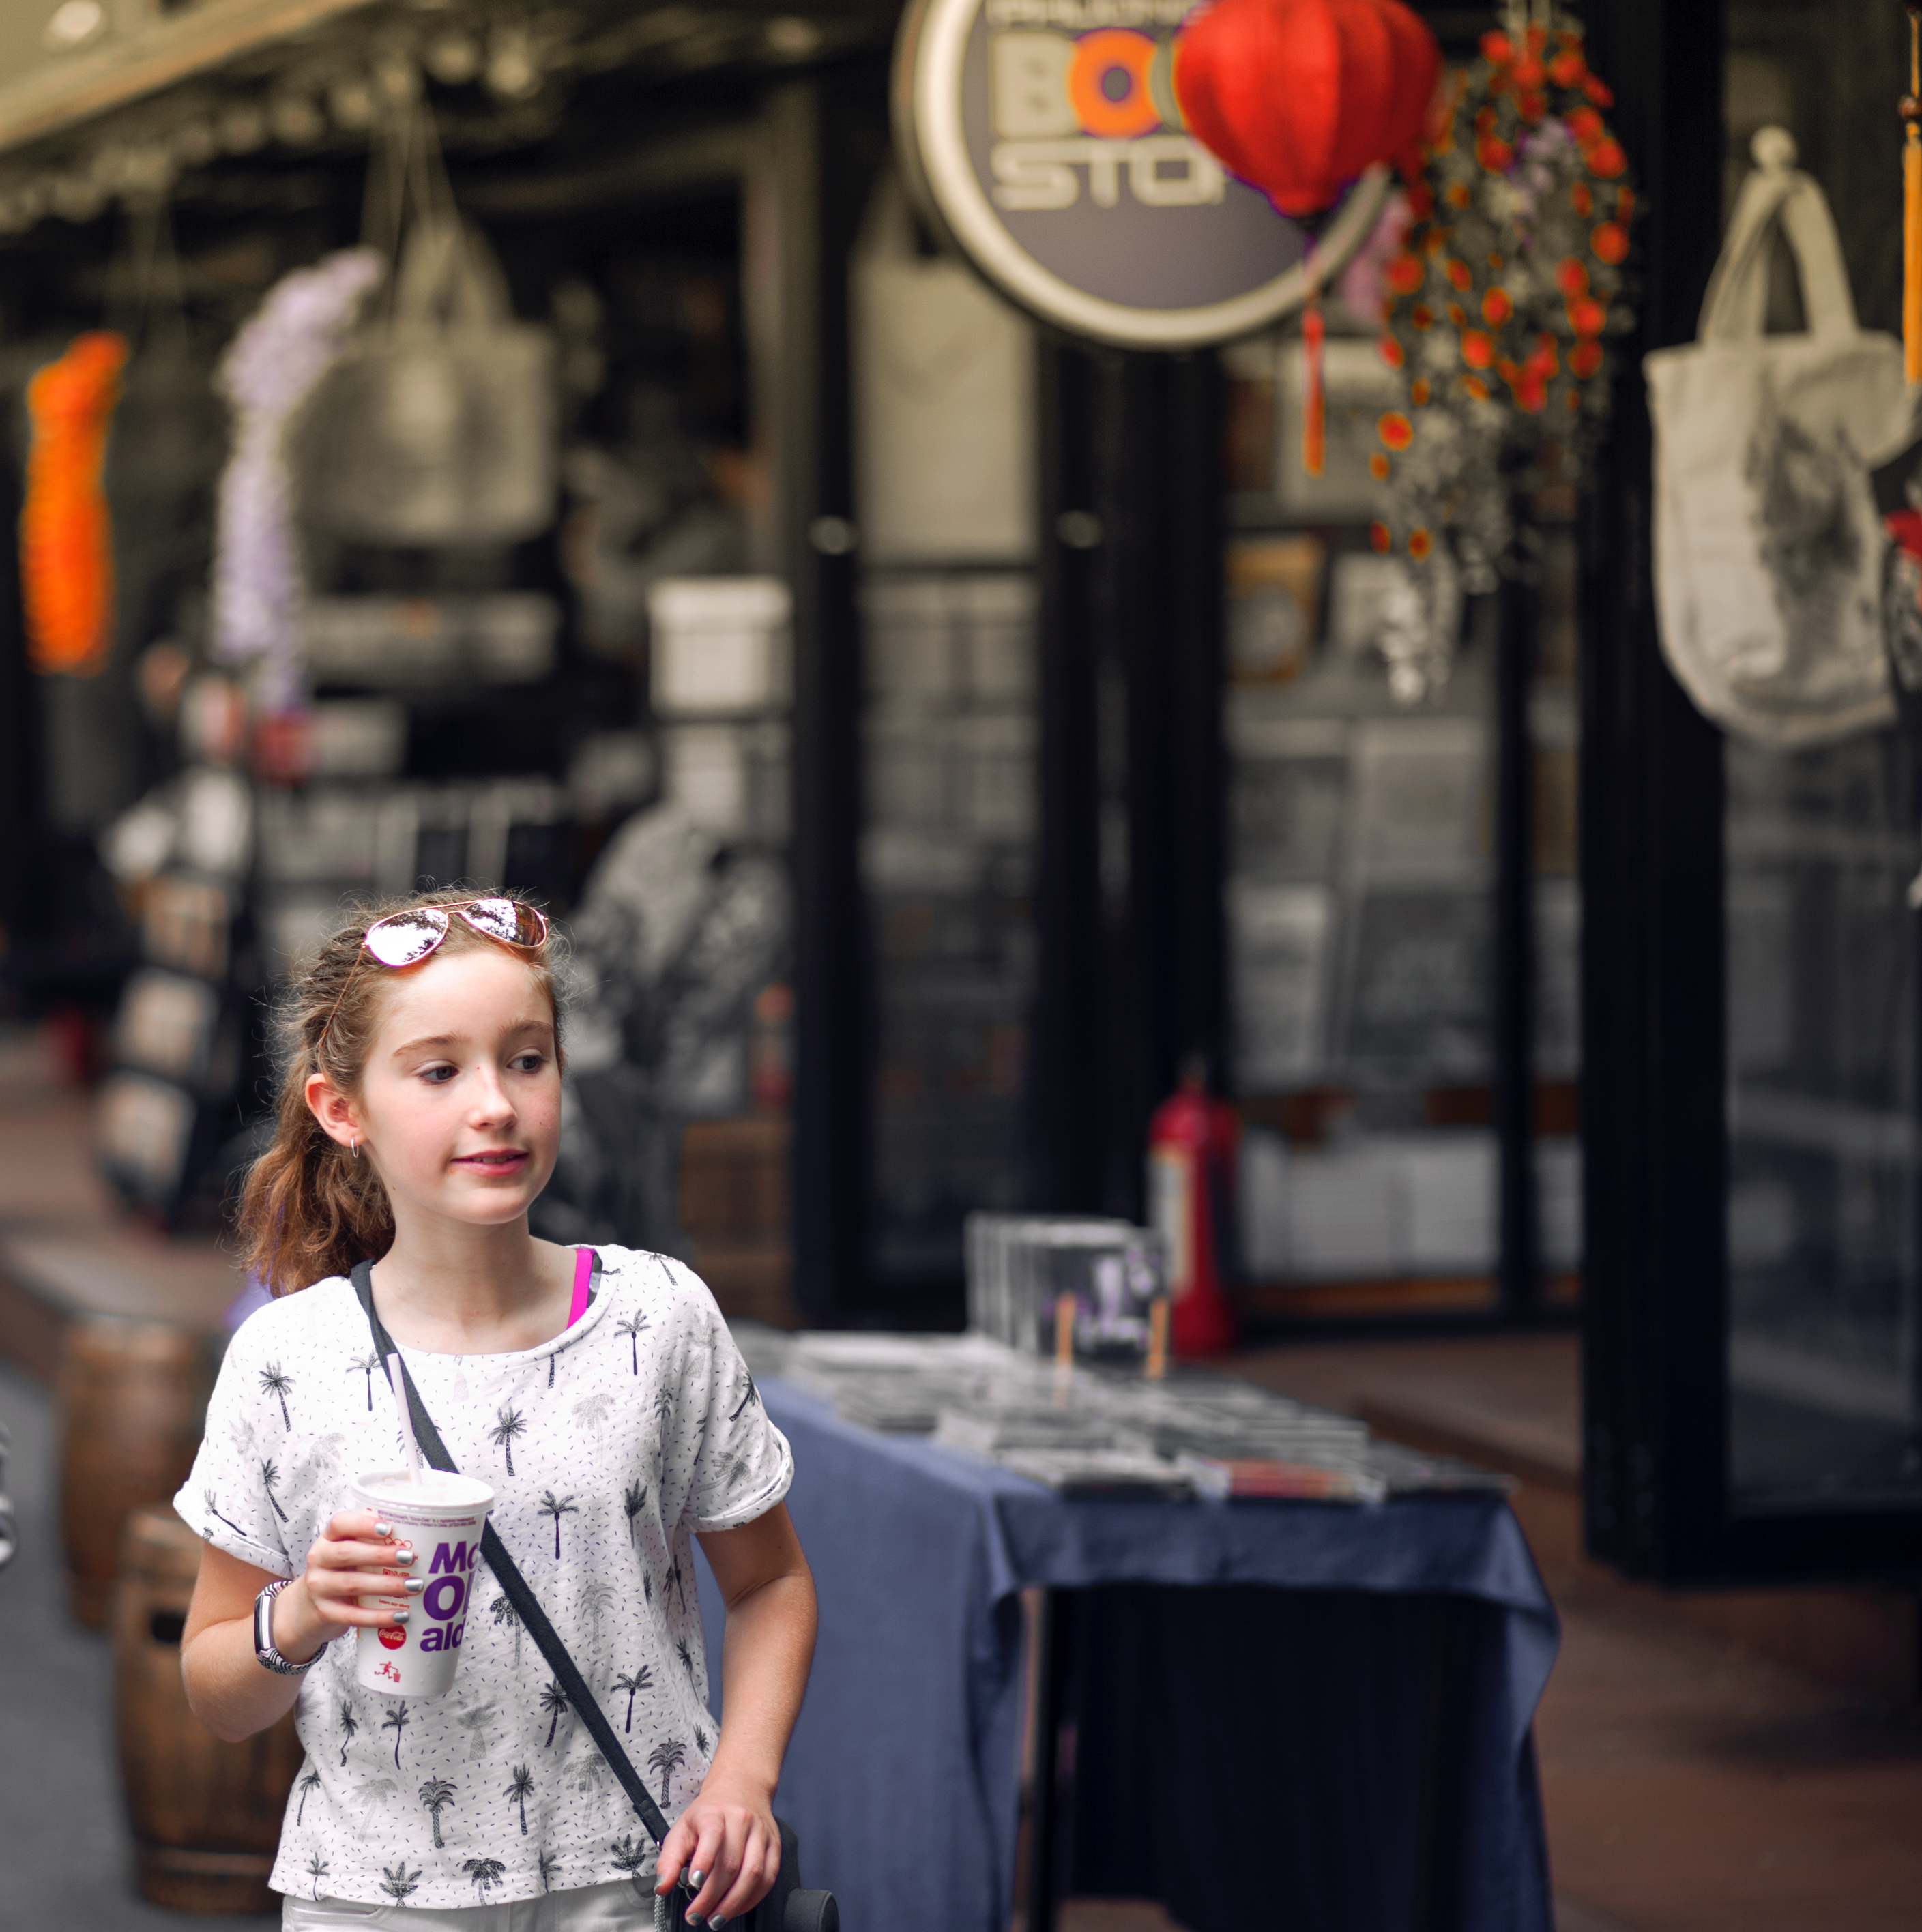 Selective Focus Photo of Girl Wearing Gray and Black Tree Print Holding Mcdonald Plastic Cup, Blur, Shops, Wear, Urban, HQ Photo